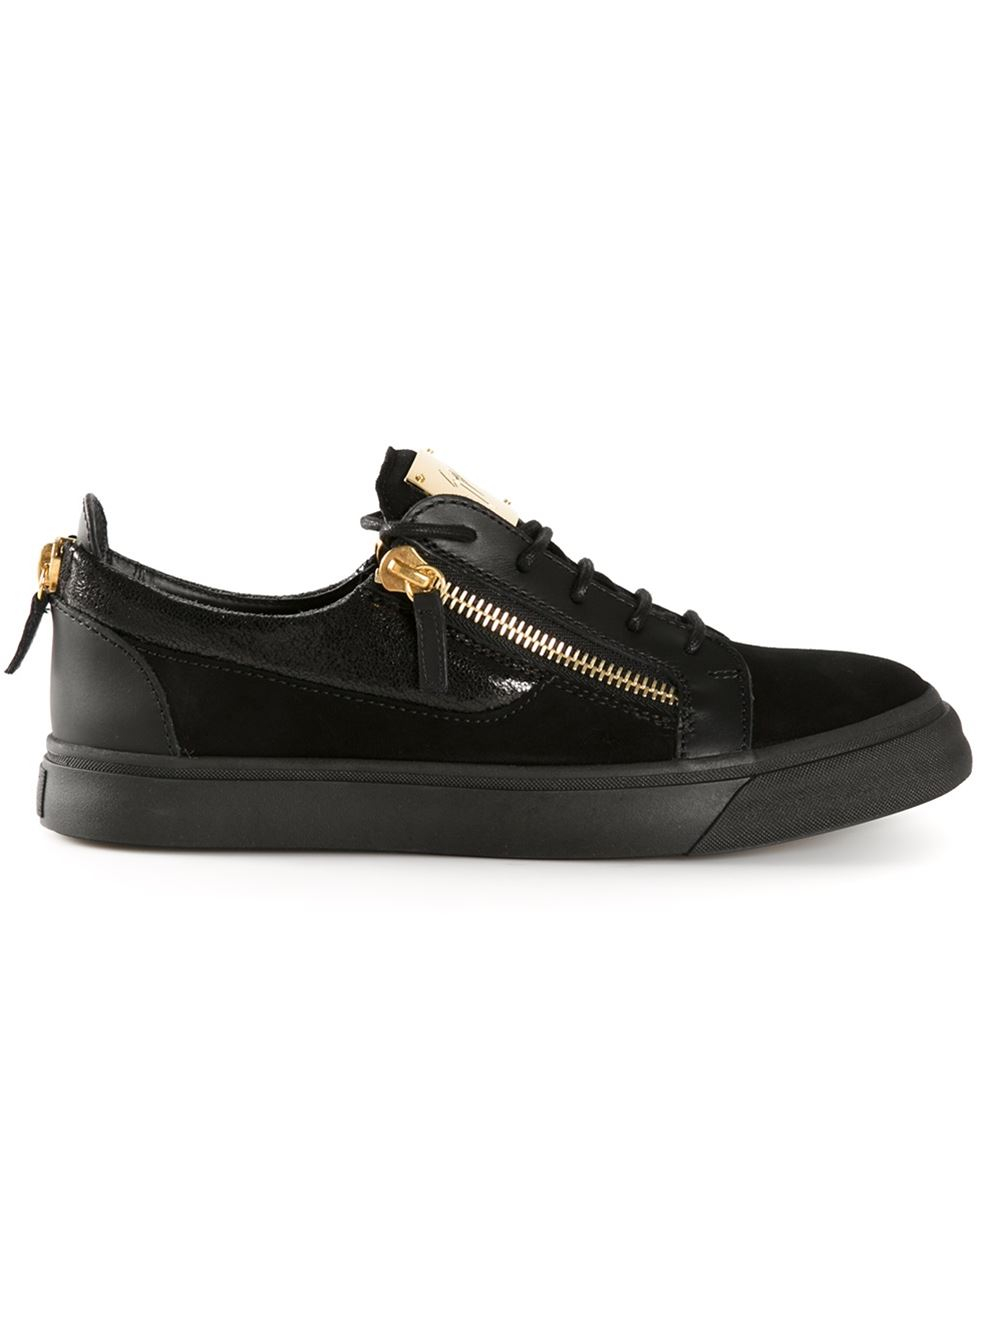 Giuseppe Zanotti Zip Detail Sneakers in Black for Men | Lyst